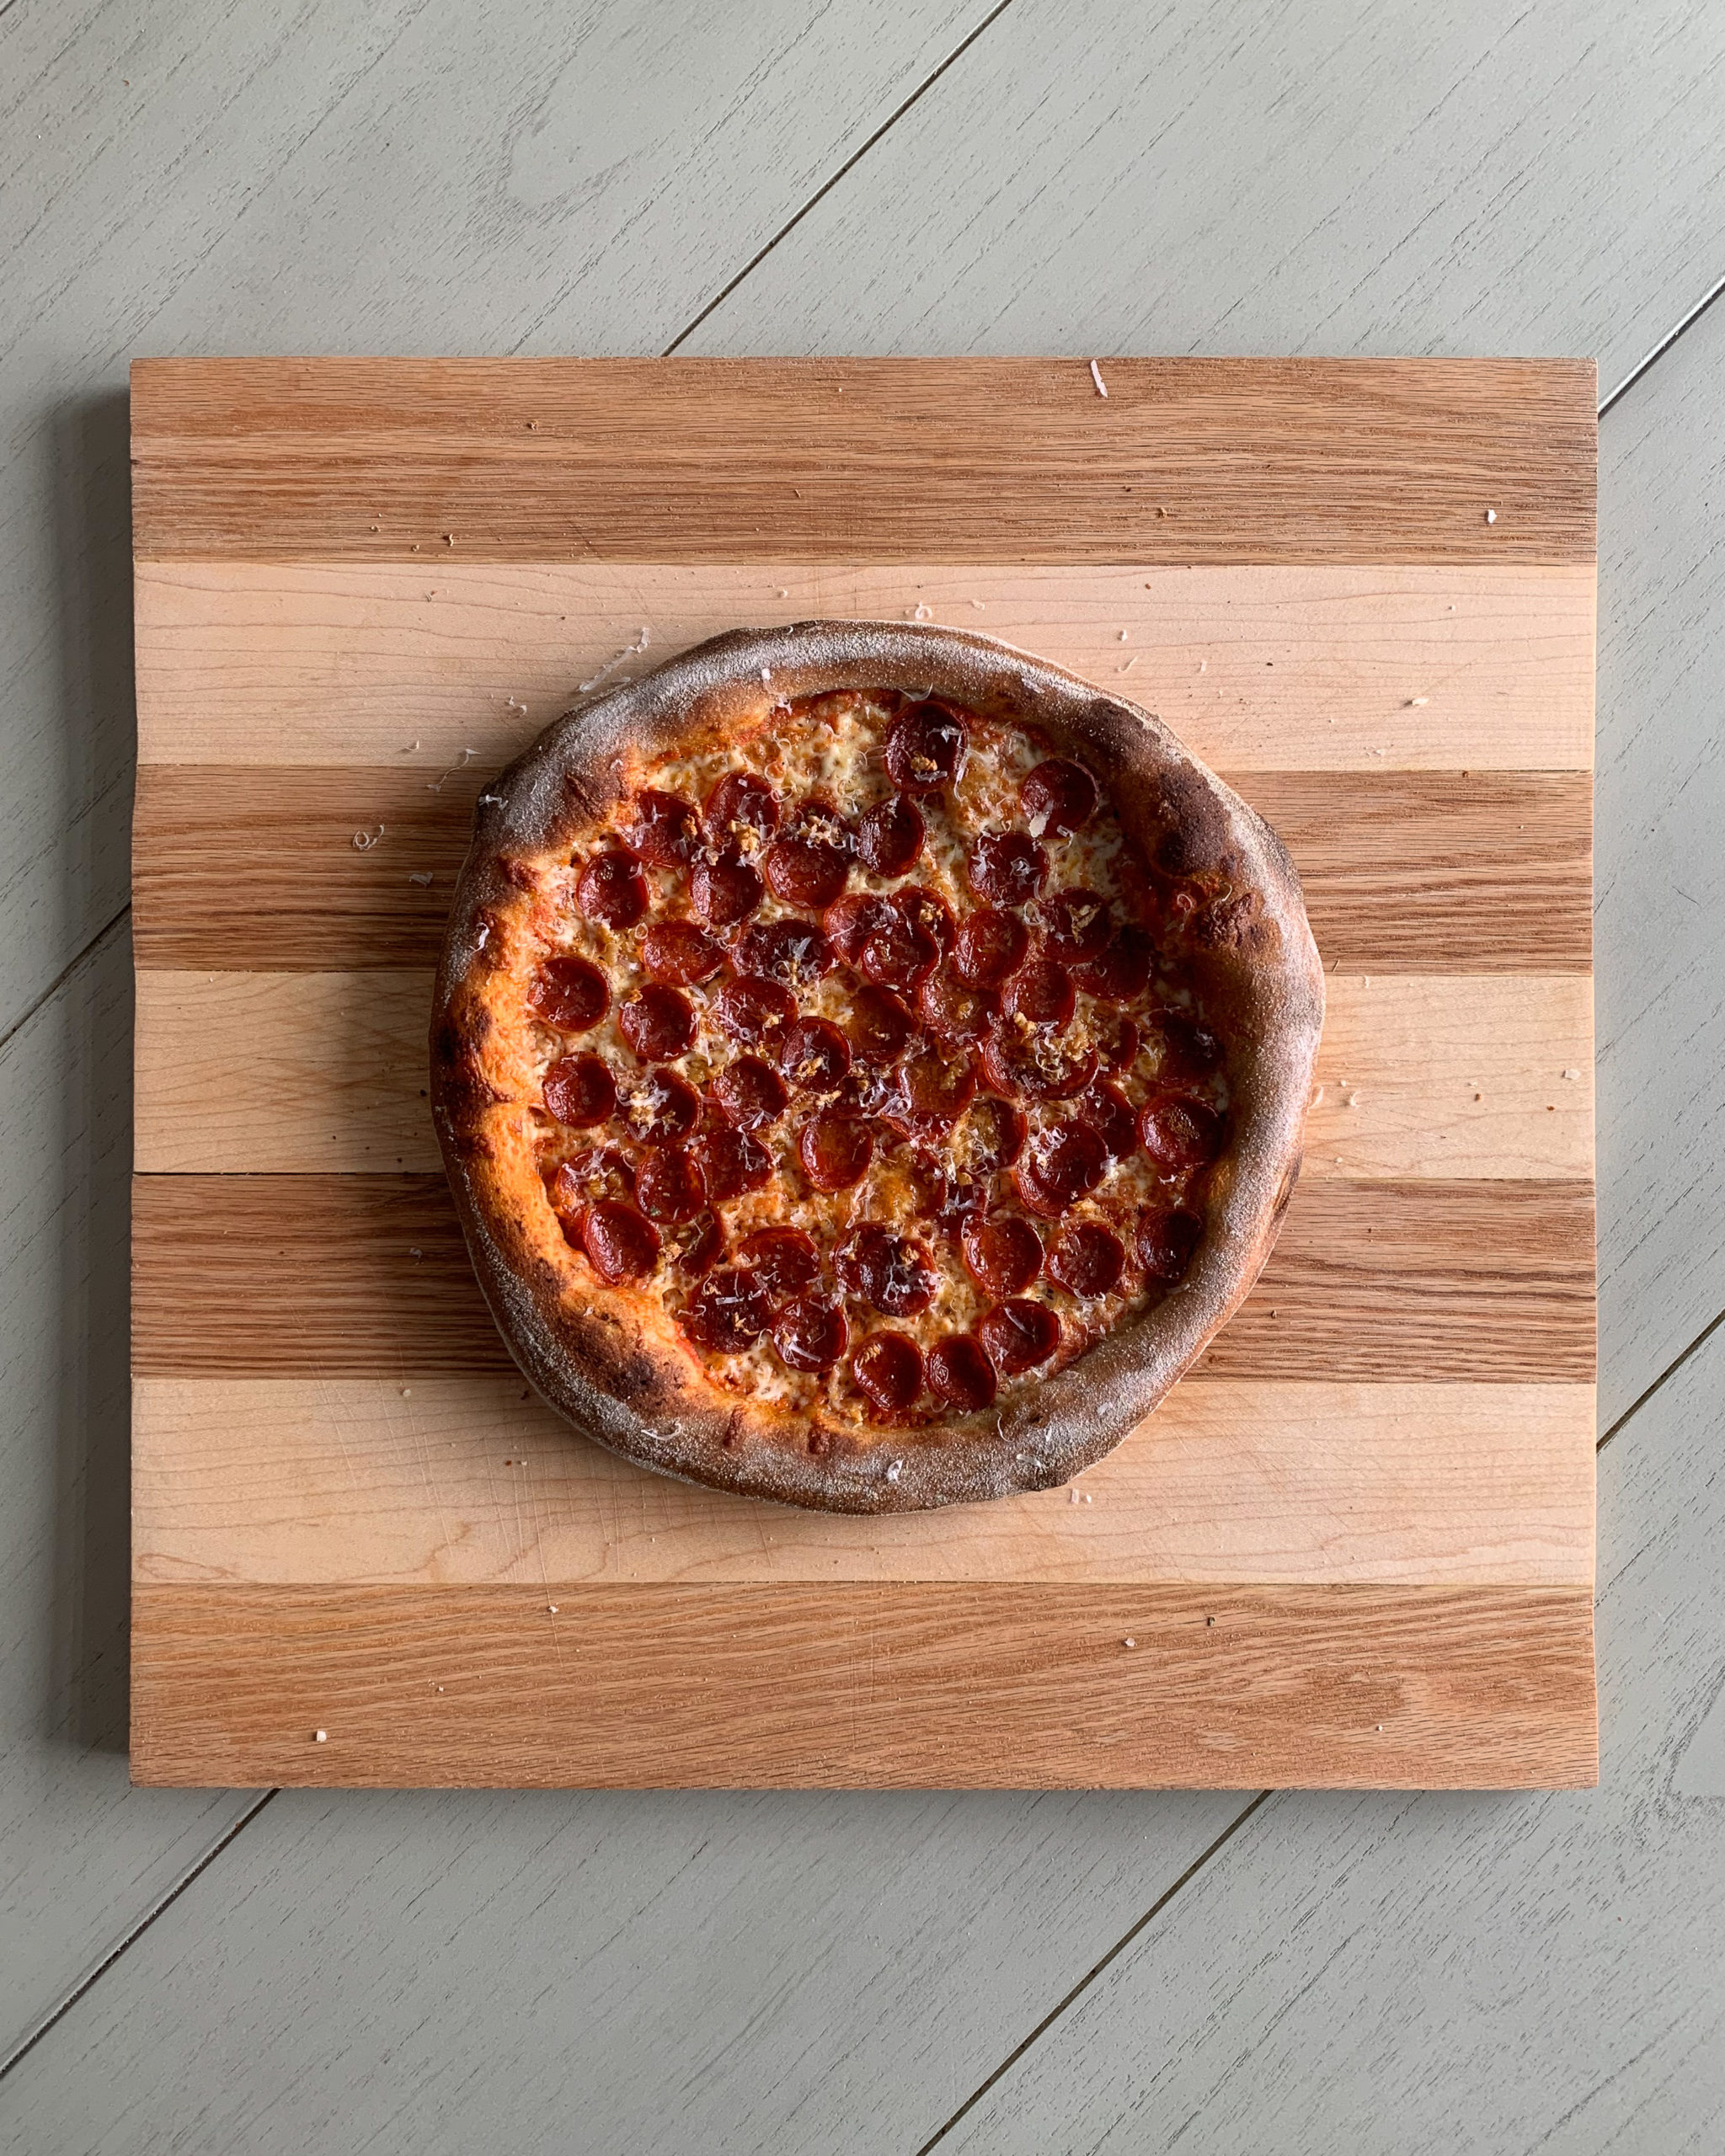 stone milled pizza recipe